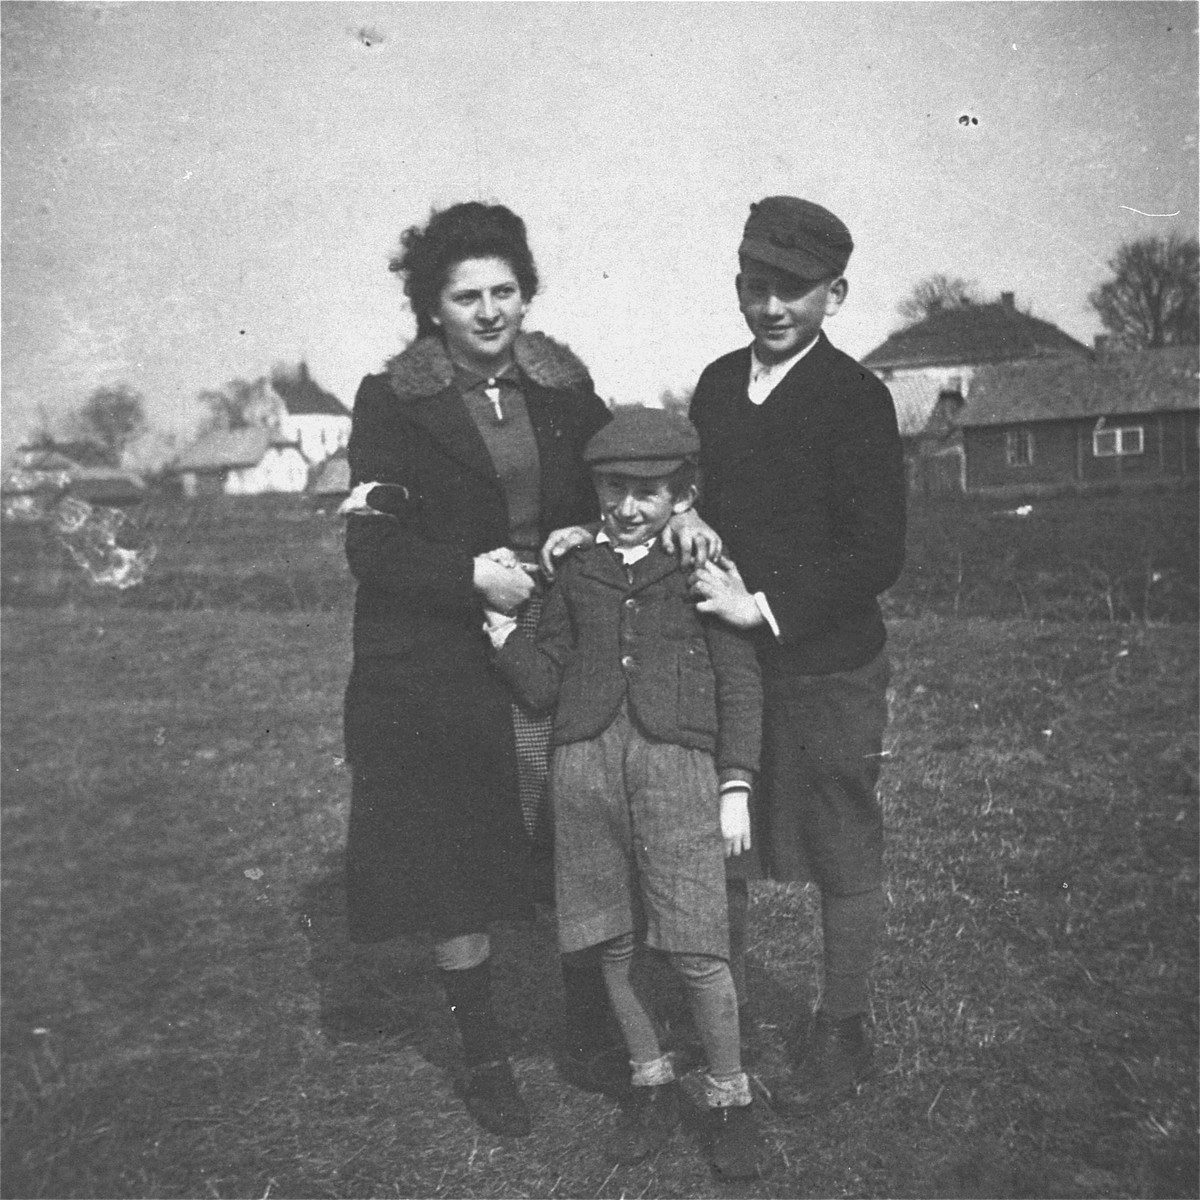 Three Jewish siblings pose outside in the Kolbuszowa ghetto.  Pictured are Manius, Leon and Niunia Notowicz.